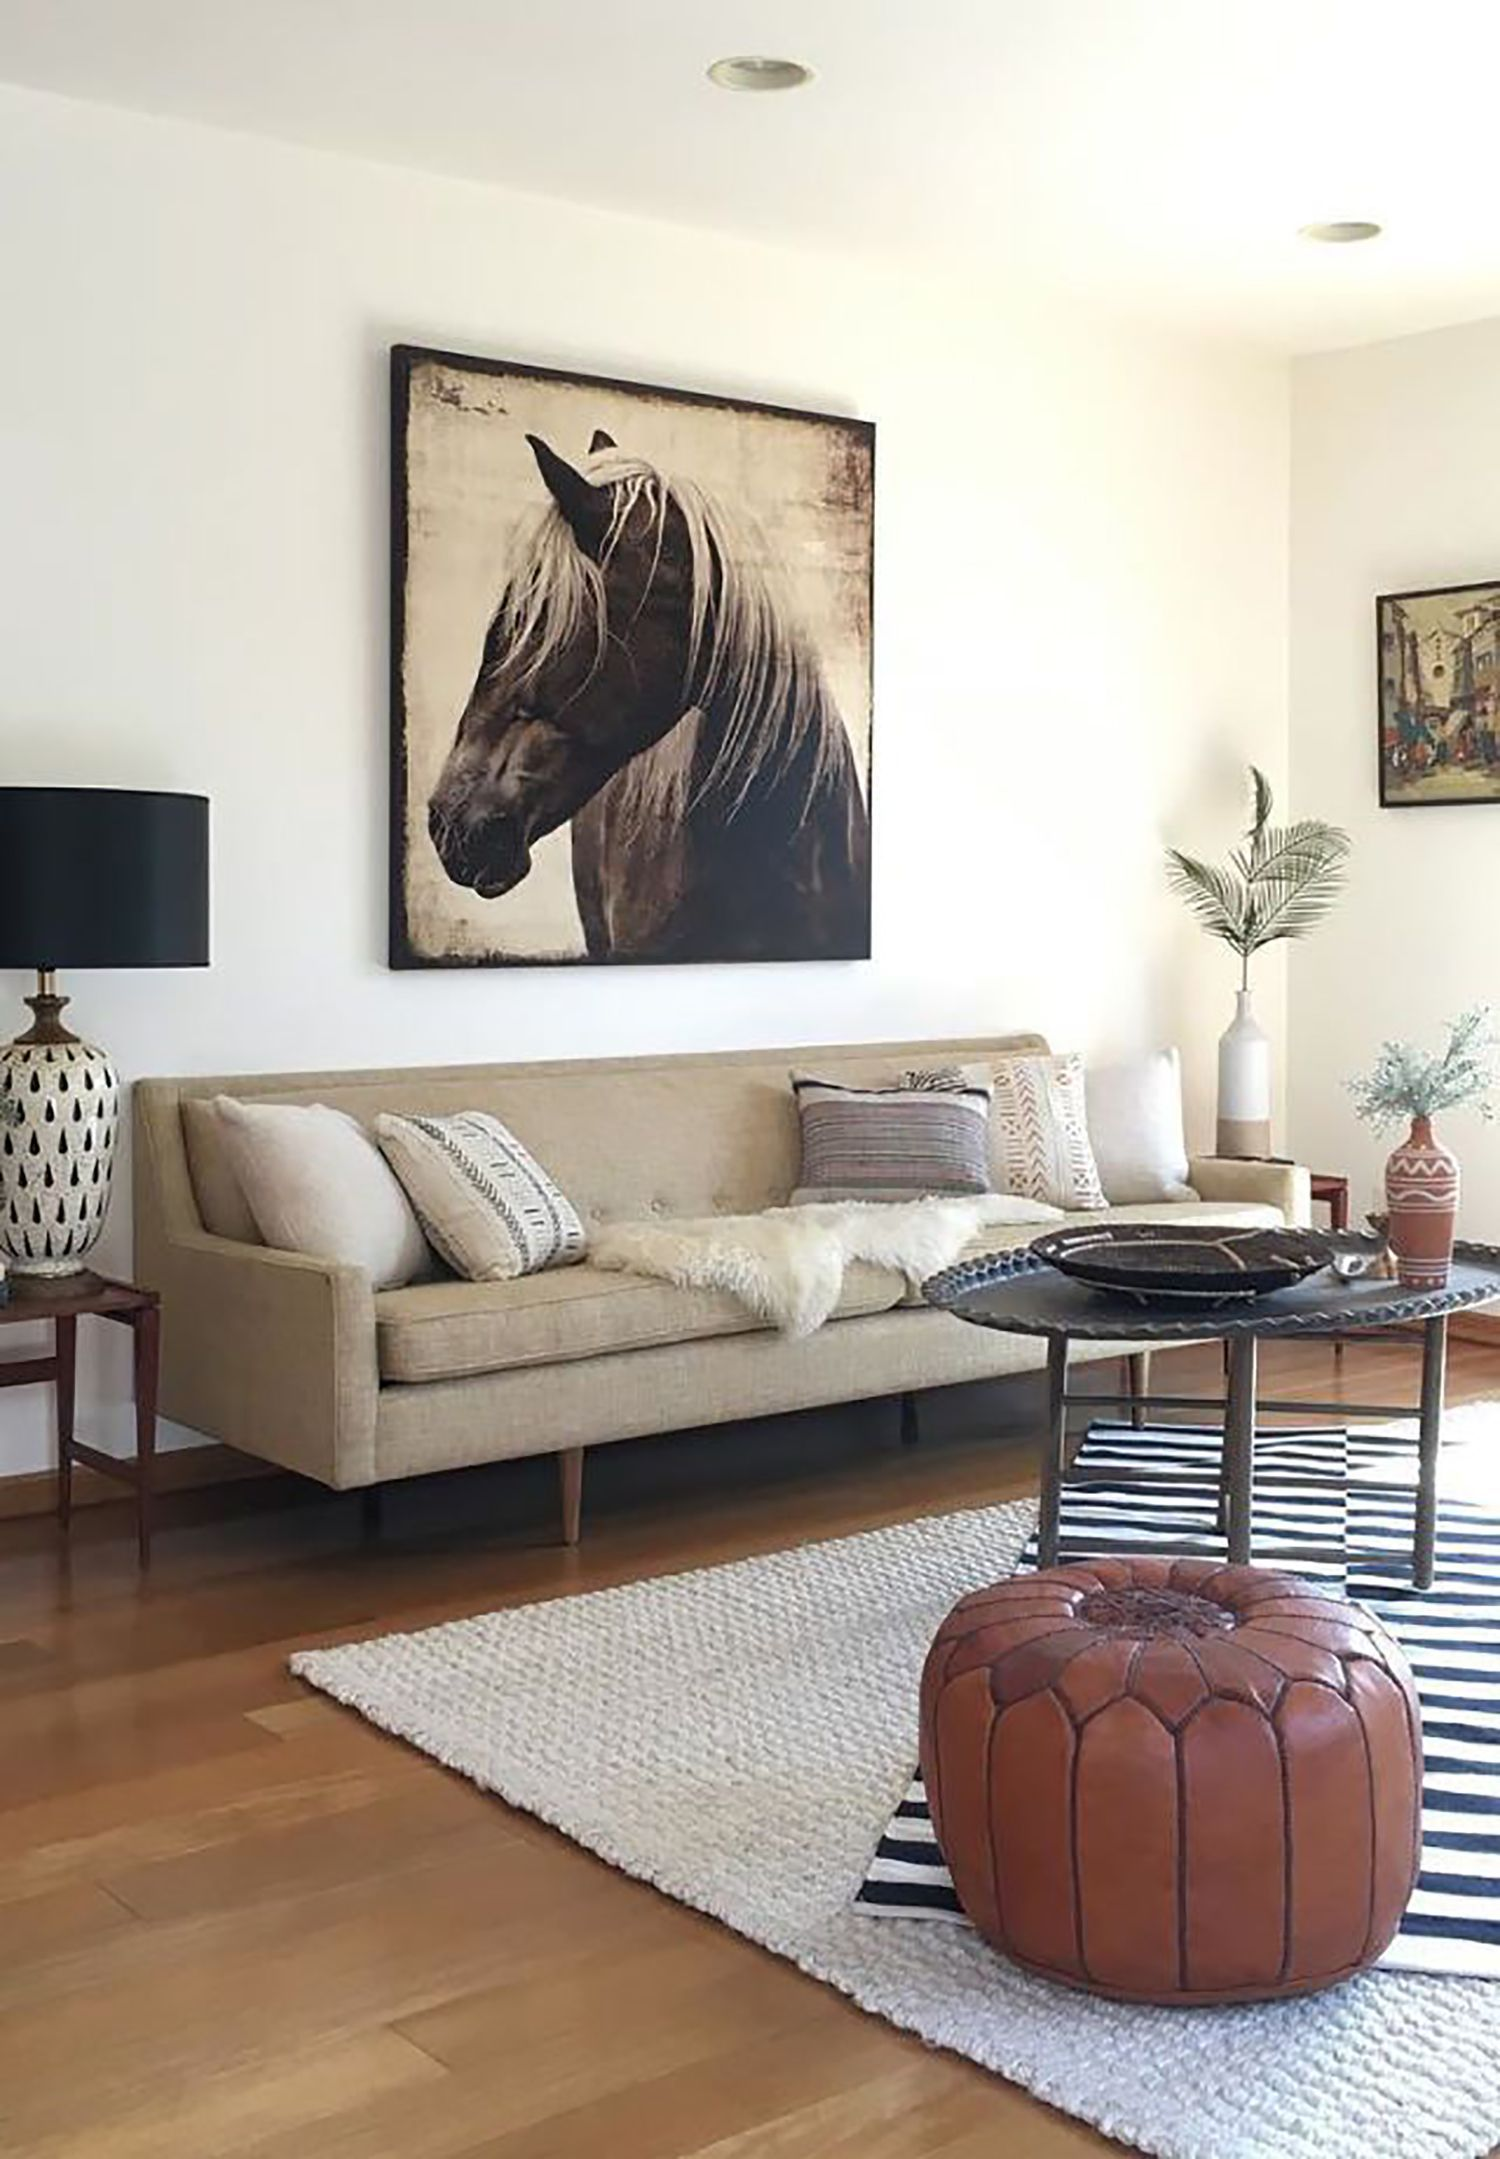 Design The Platform Experiment We Layered Two Rugs In This Space And It St Layered Rugs Living Room Tribal Decor Living Room Rugs In Living Room